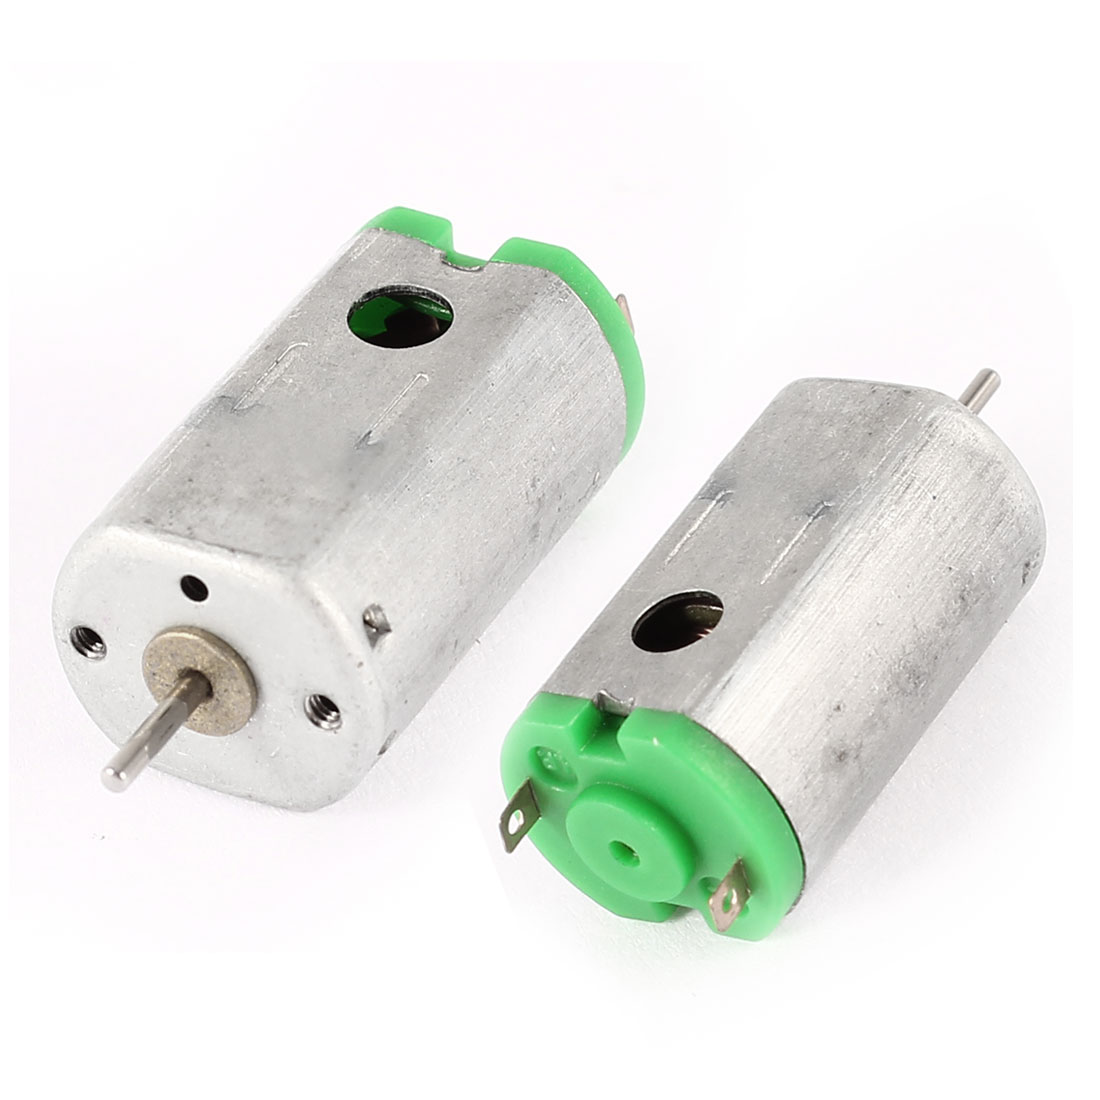 2 Pcs Magnetic Micro DC Motor 2 Pin Terminals 3-3.7V 19300-23800RPM Speed